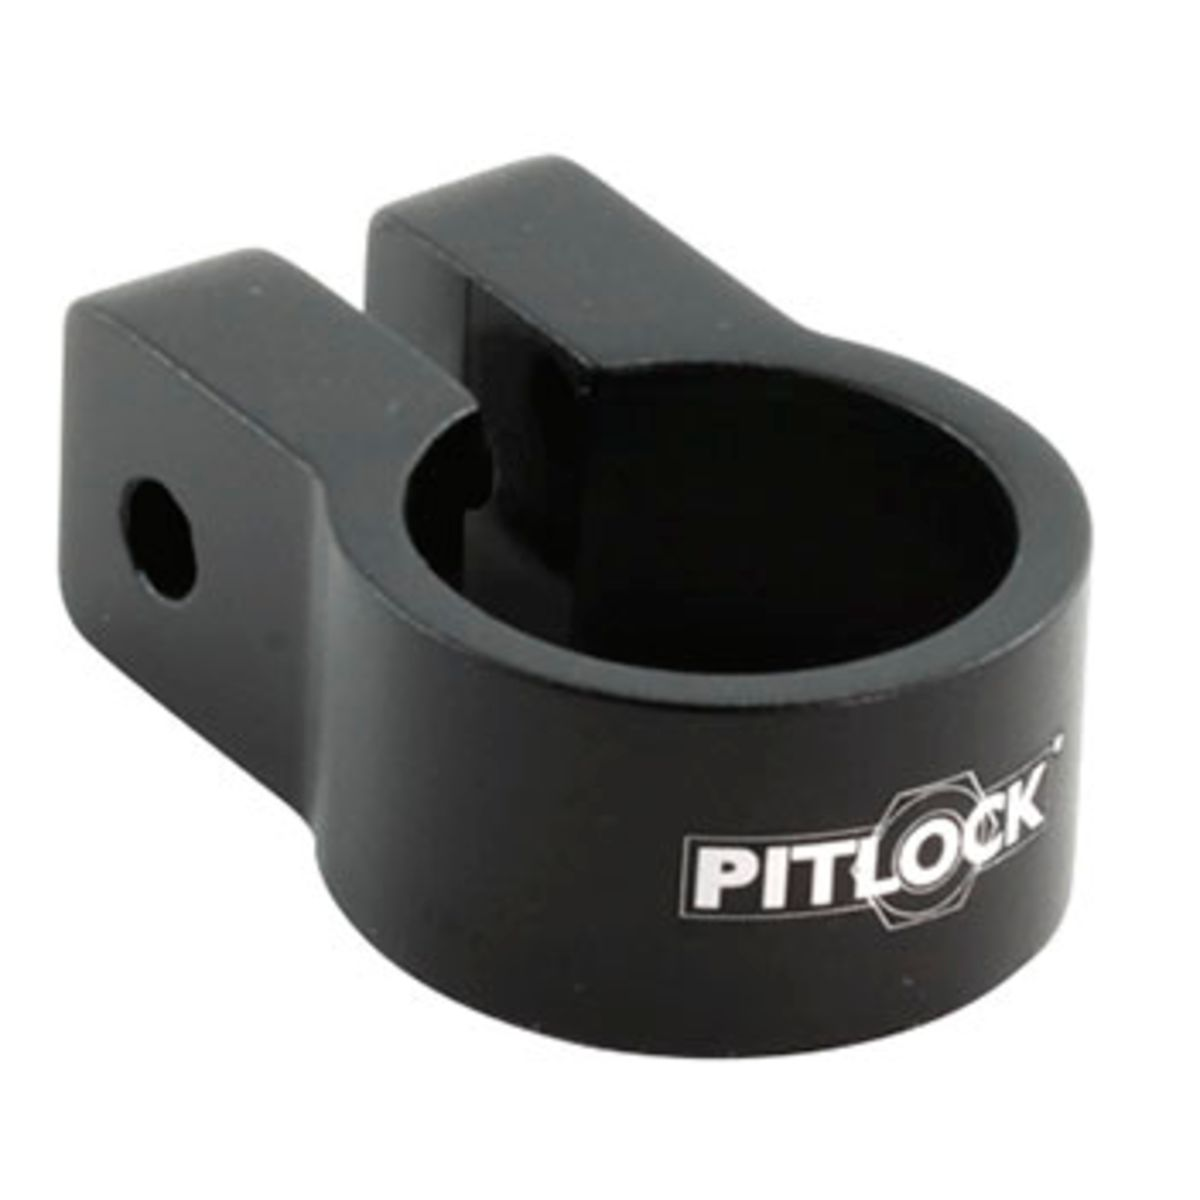 Pitlock seat clamp without tension axle | Seat Clamp